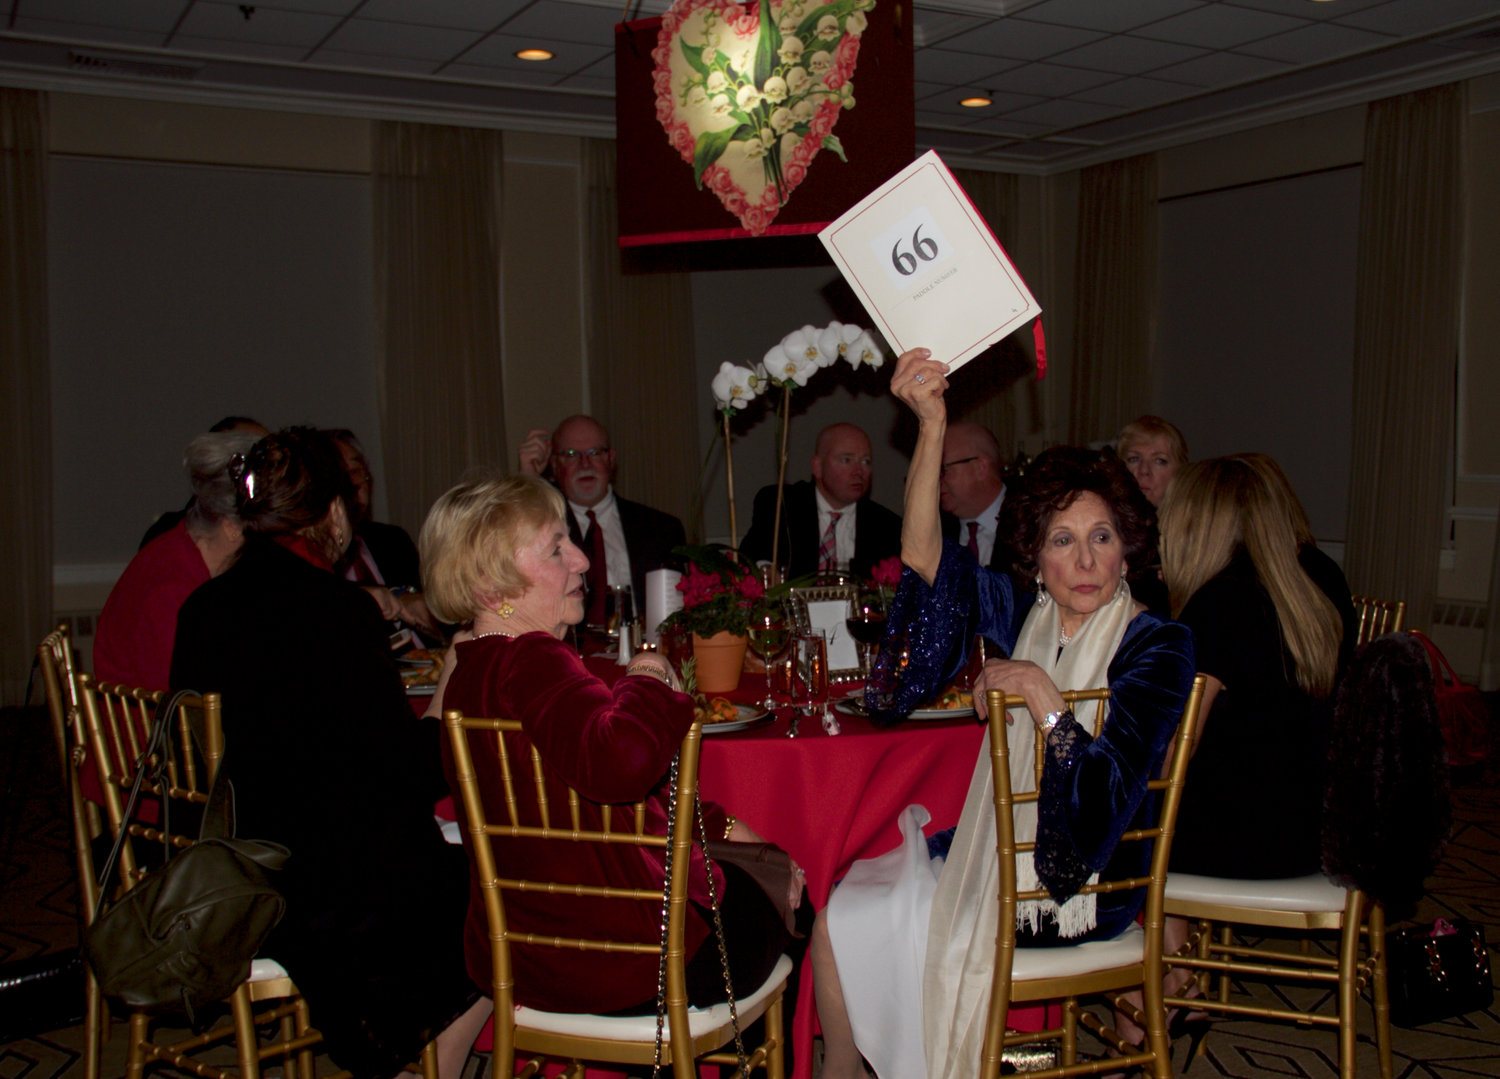 Guests placed bids during the auction portion of the benefit.